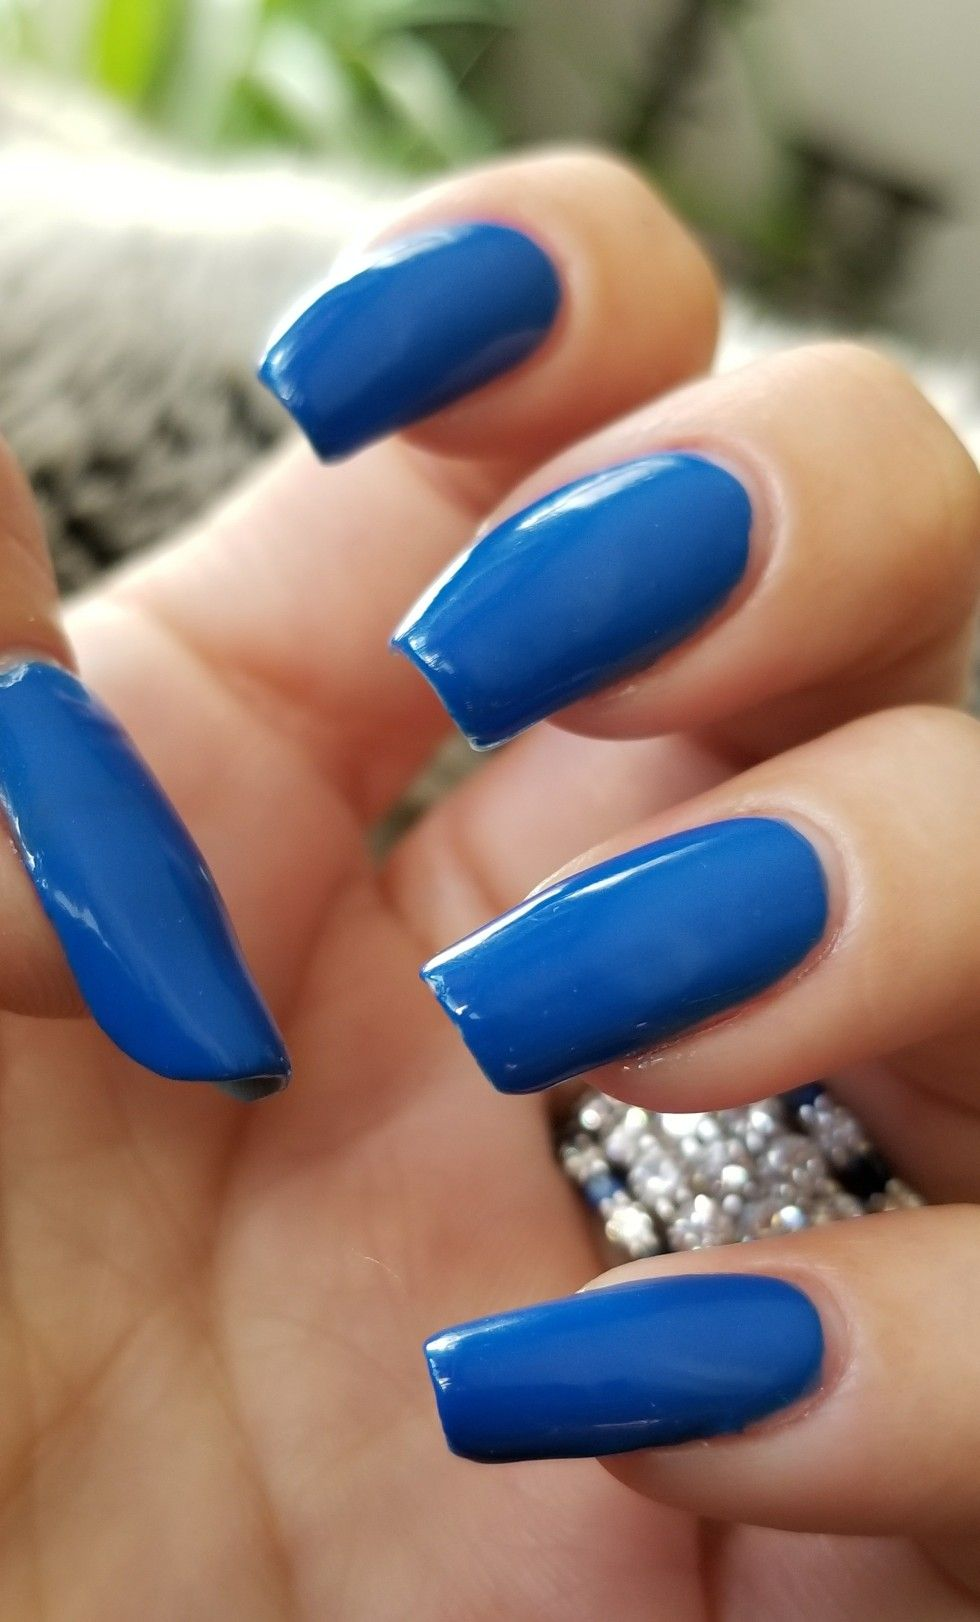 OPI- Tile Art To Warm Your Heart *Signs of wear by day 2 using OPI ...